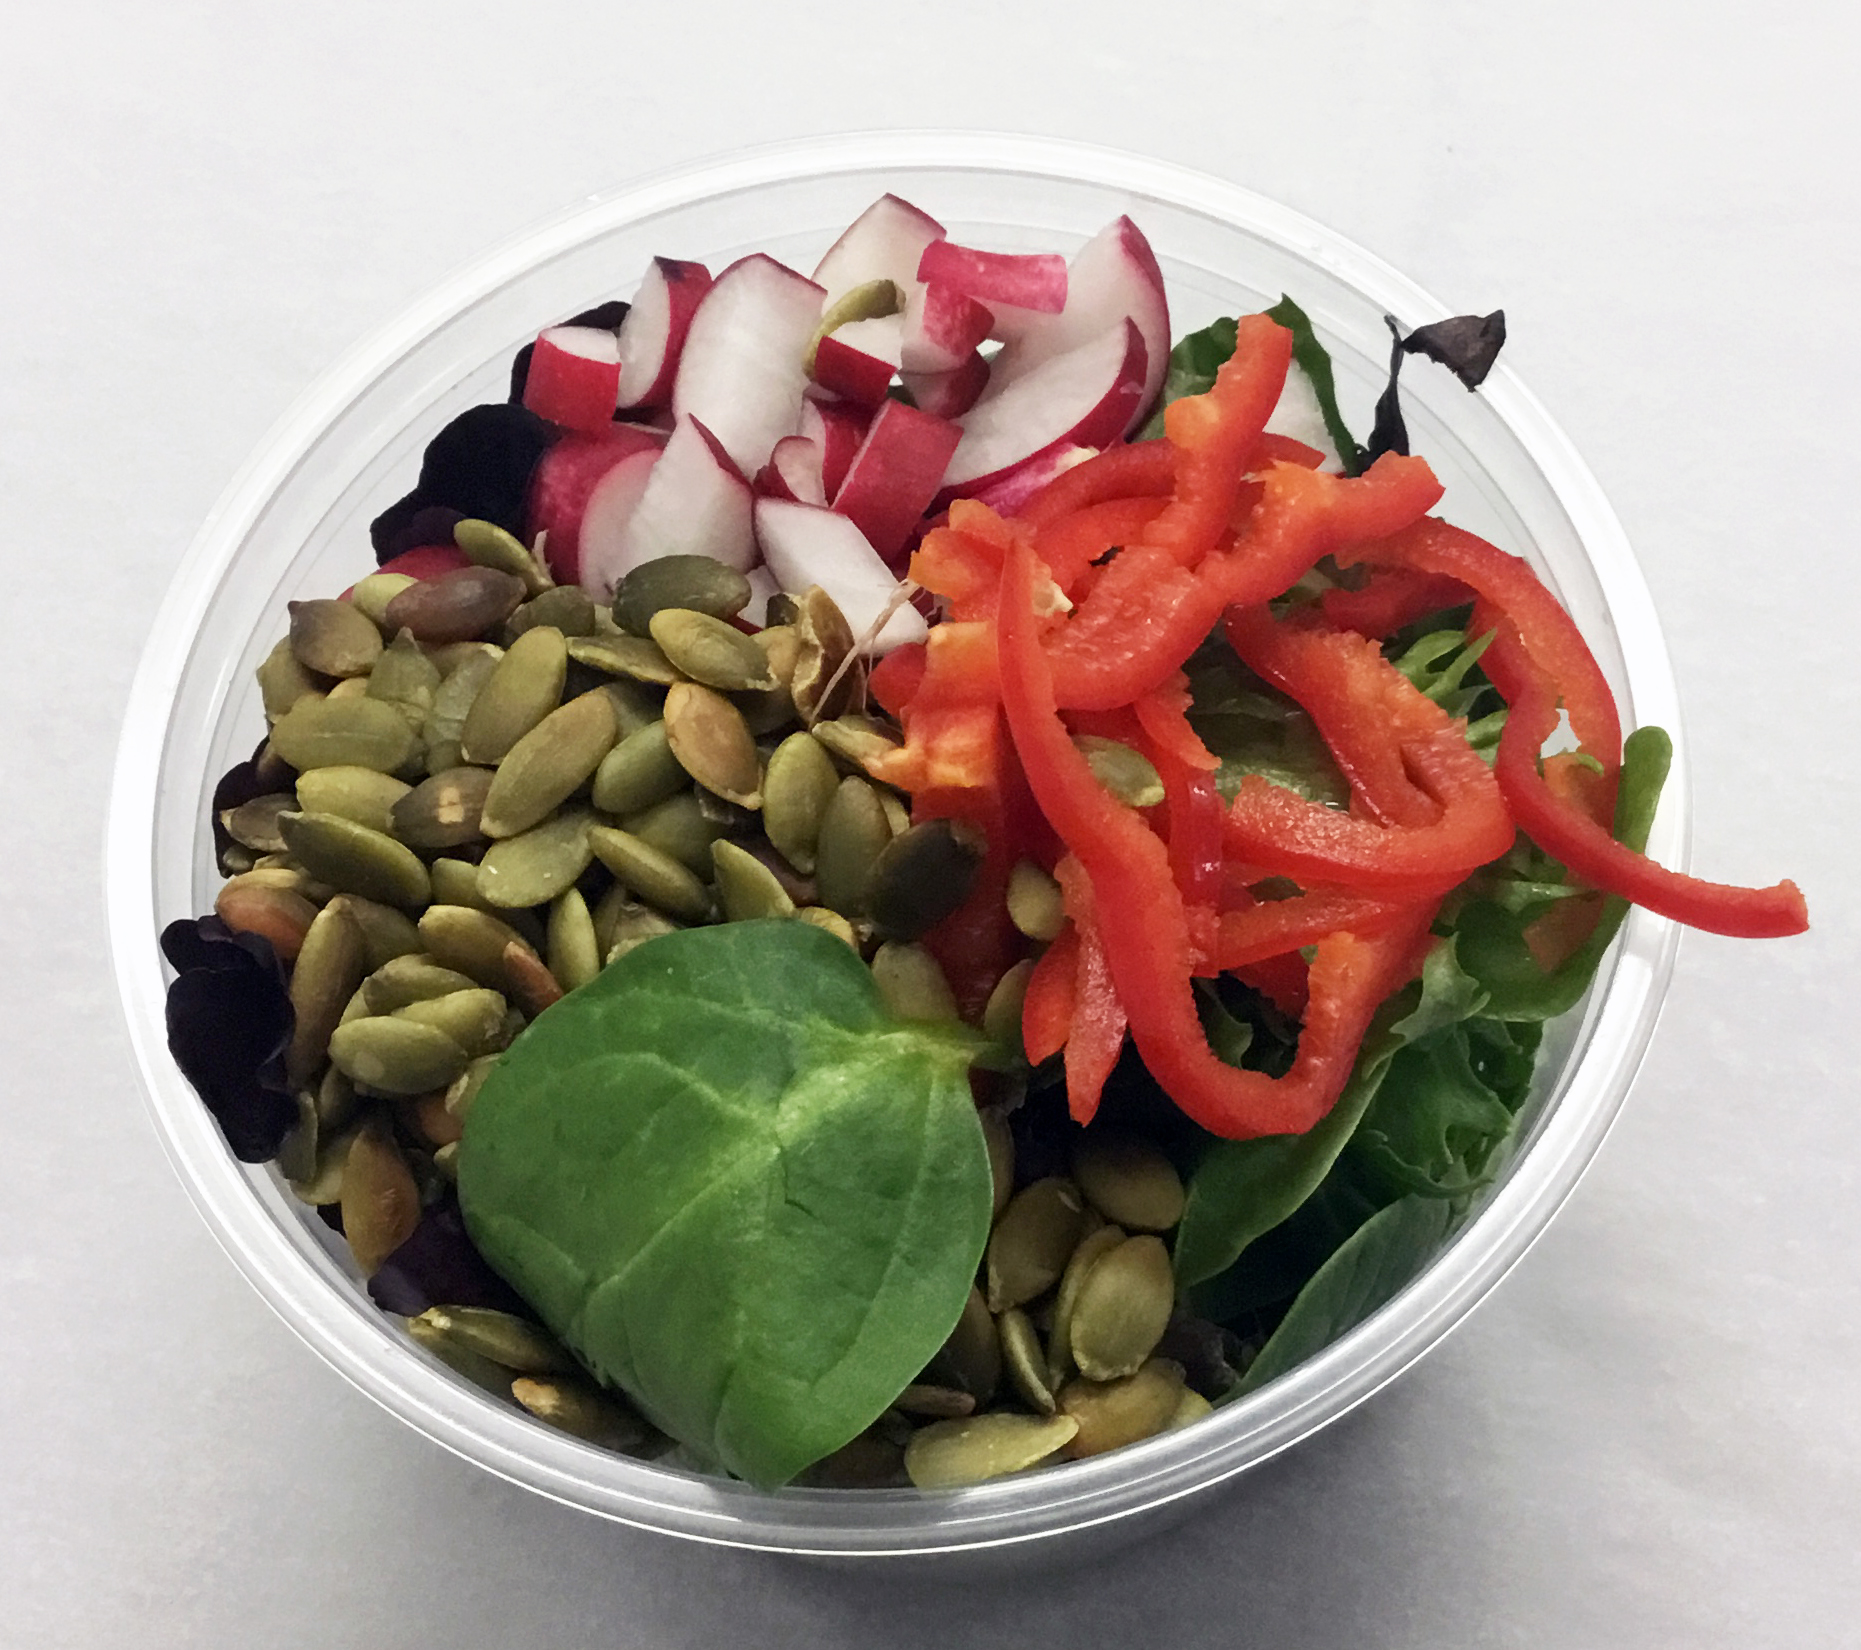 Mixed spring greens with bell peppers, red radish and roasted pumpkin seeds.